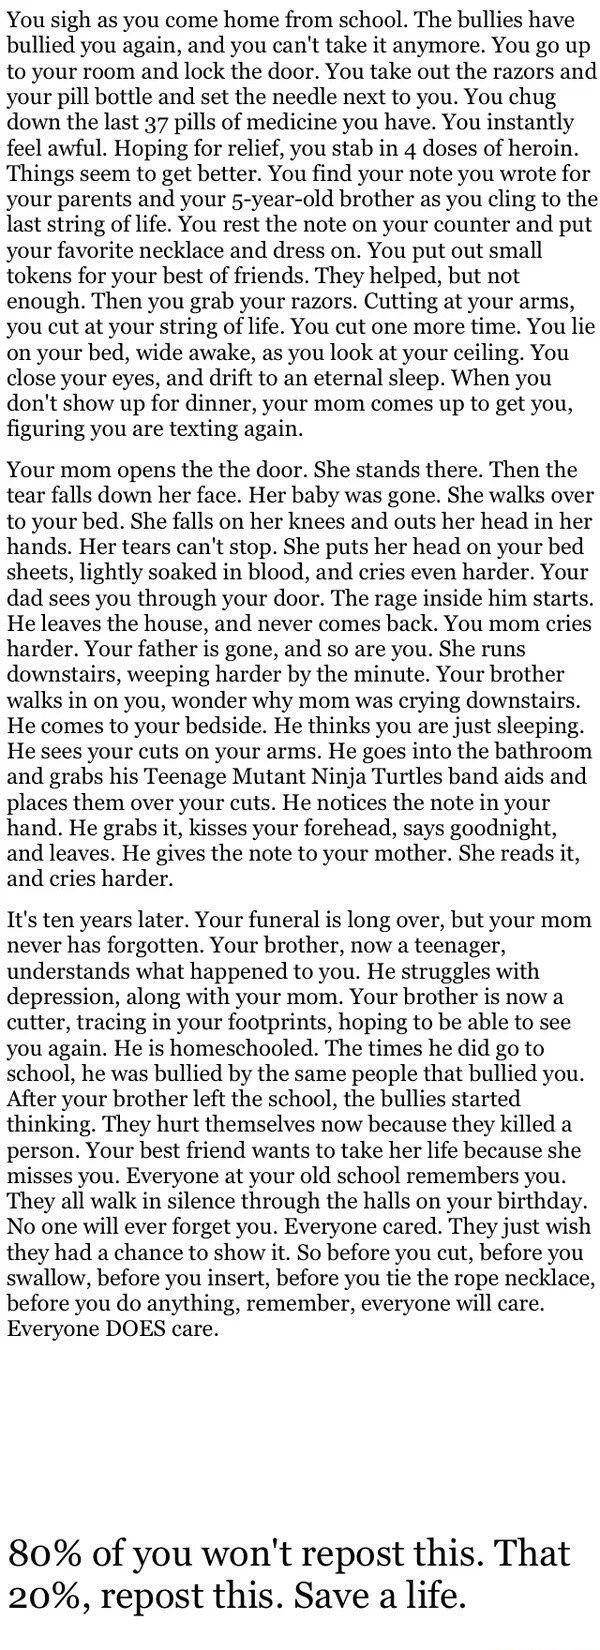 Guys, it's long but worth the read